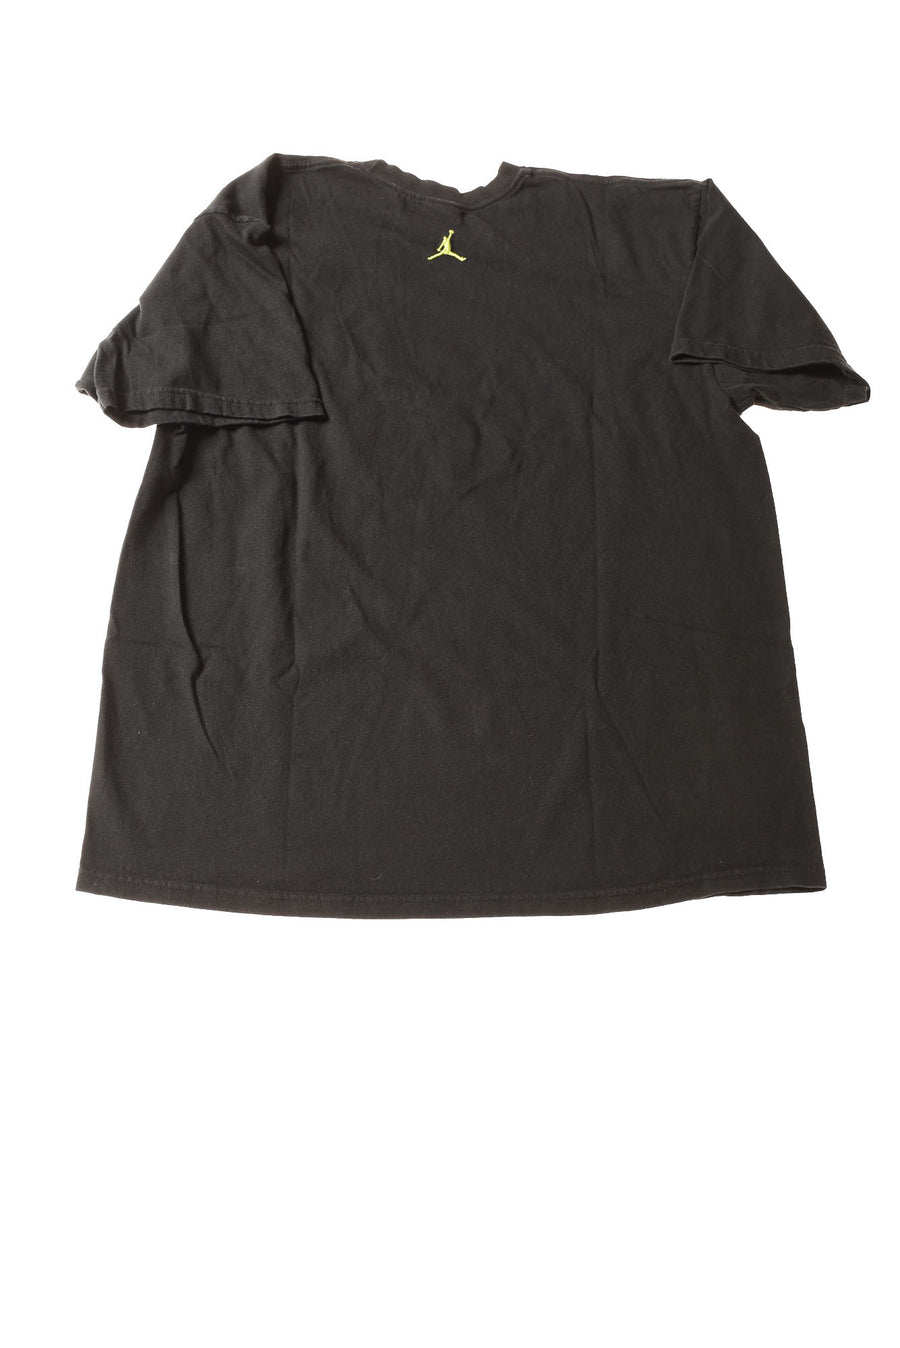 Men's Shirt By Air Jordan